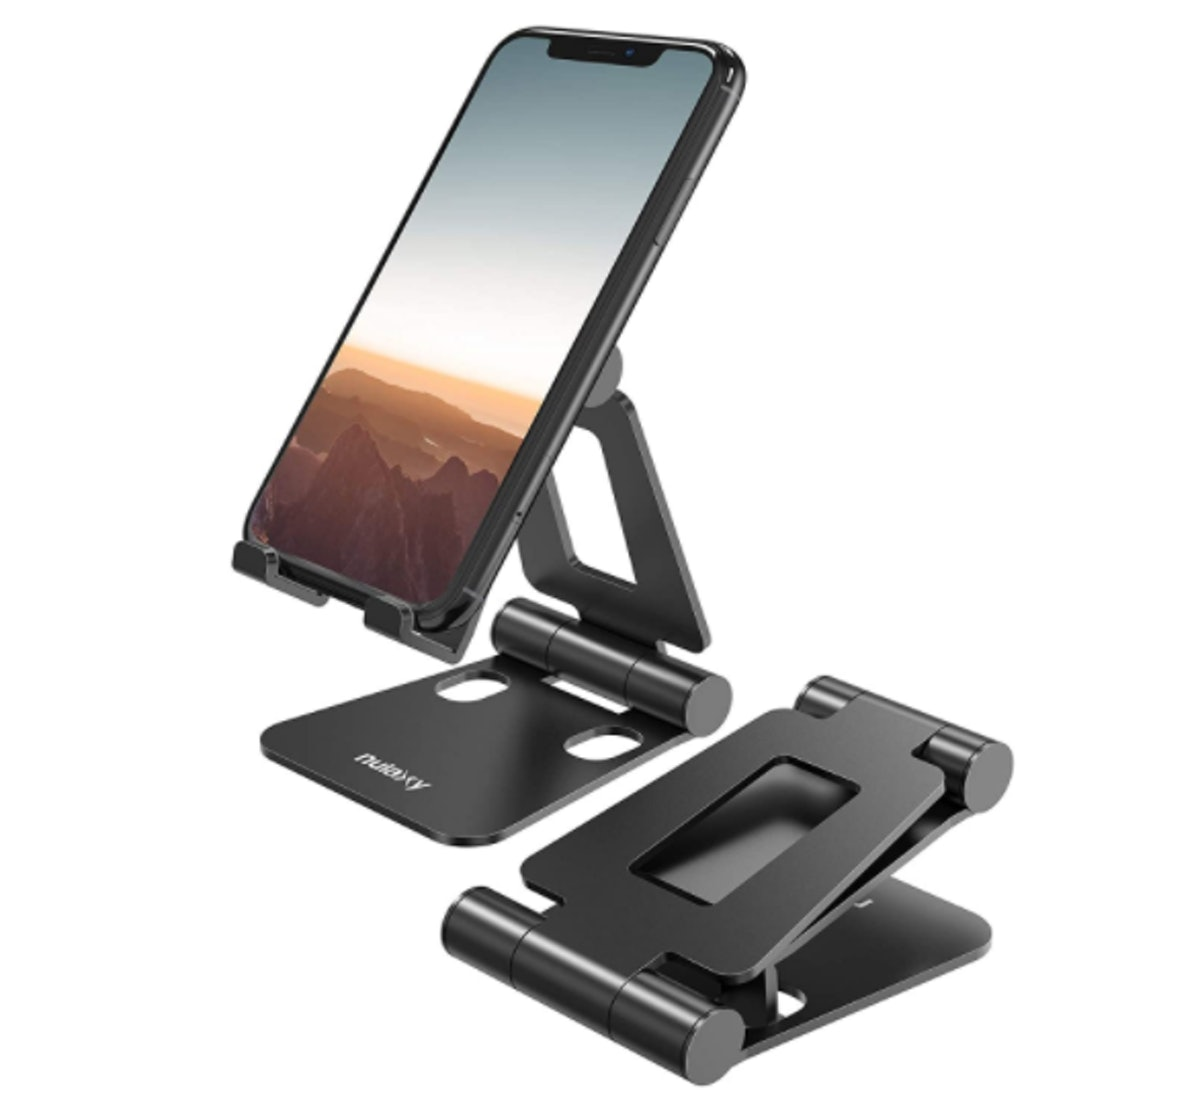 Nulaxy Cell Phone Stand